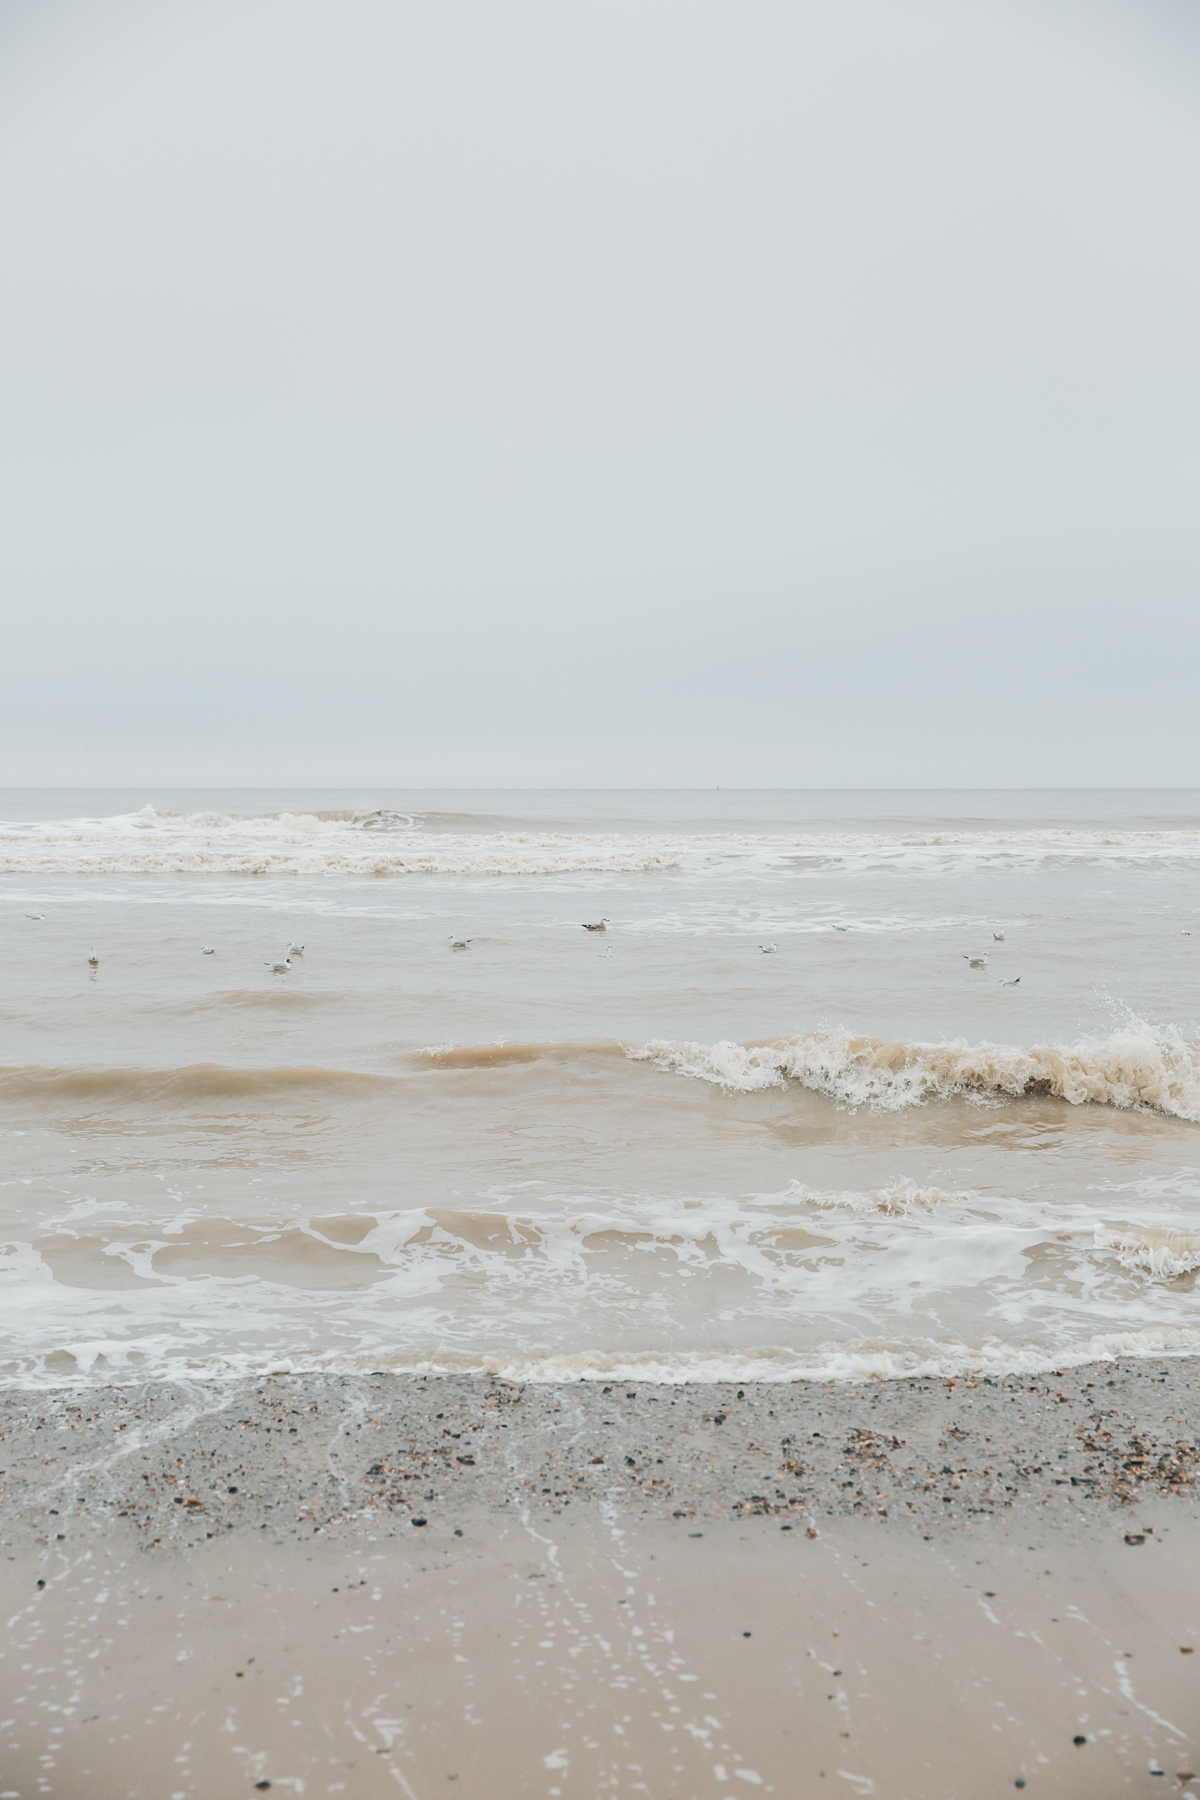 The sea at Mundesley on the North Norfolk coast.